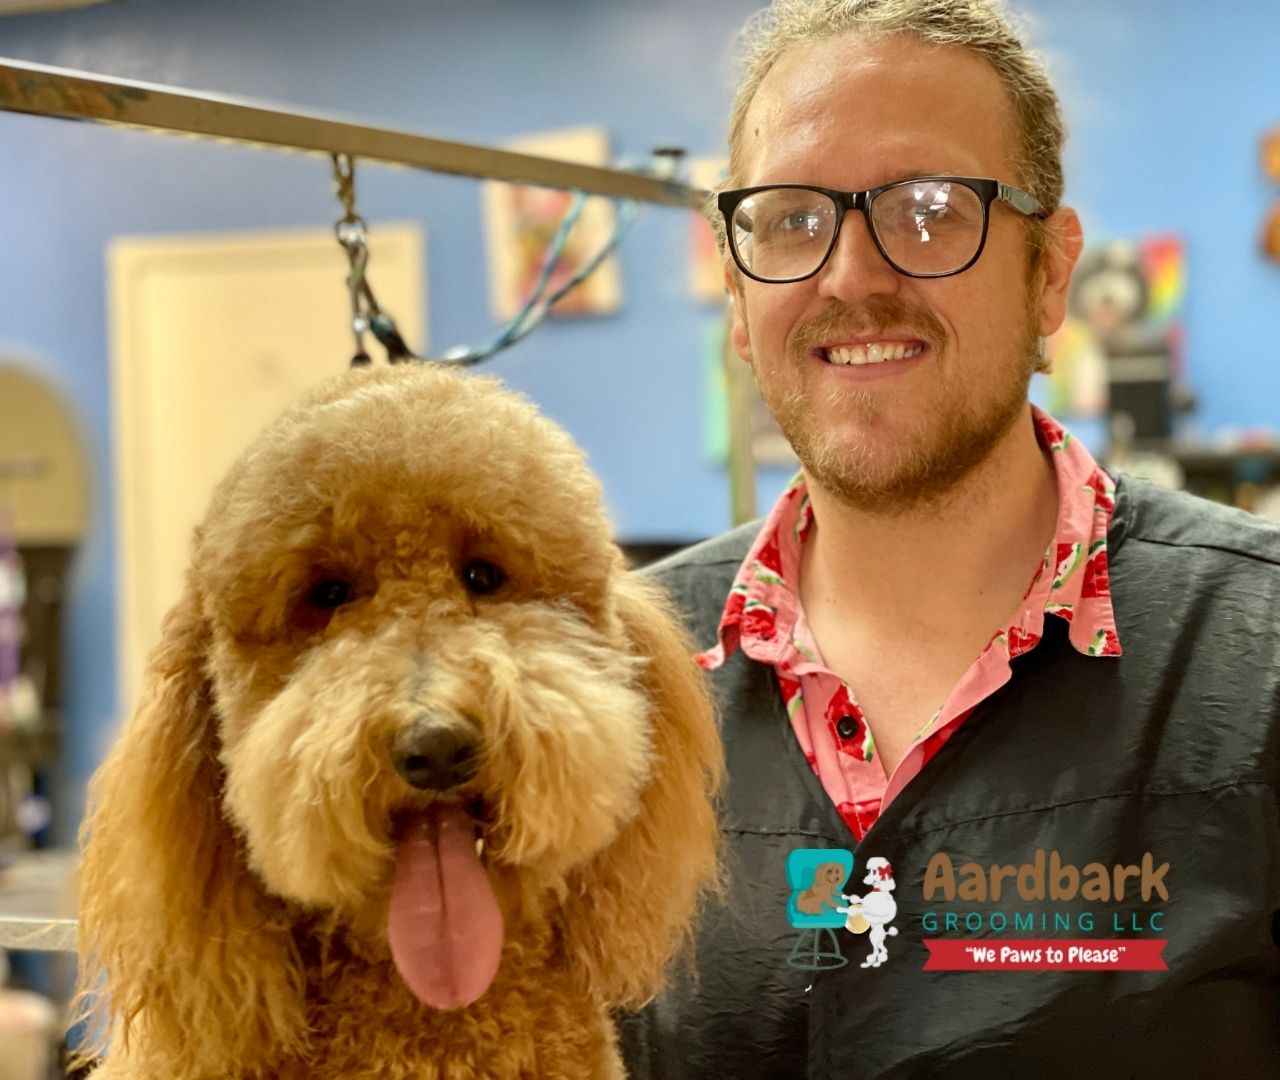 aardbark dog groomers - head shot pictures with dogs being groomed in the picture (3)